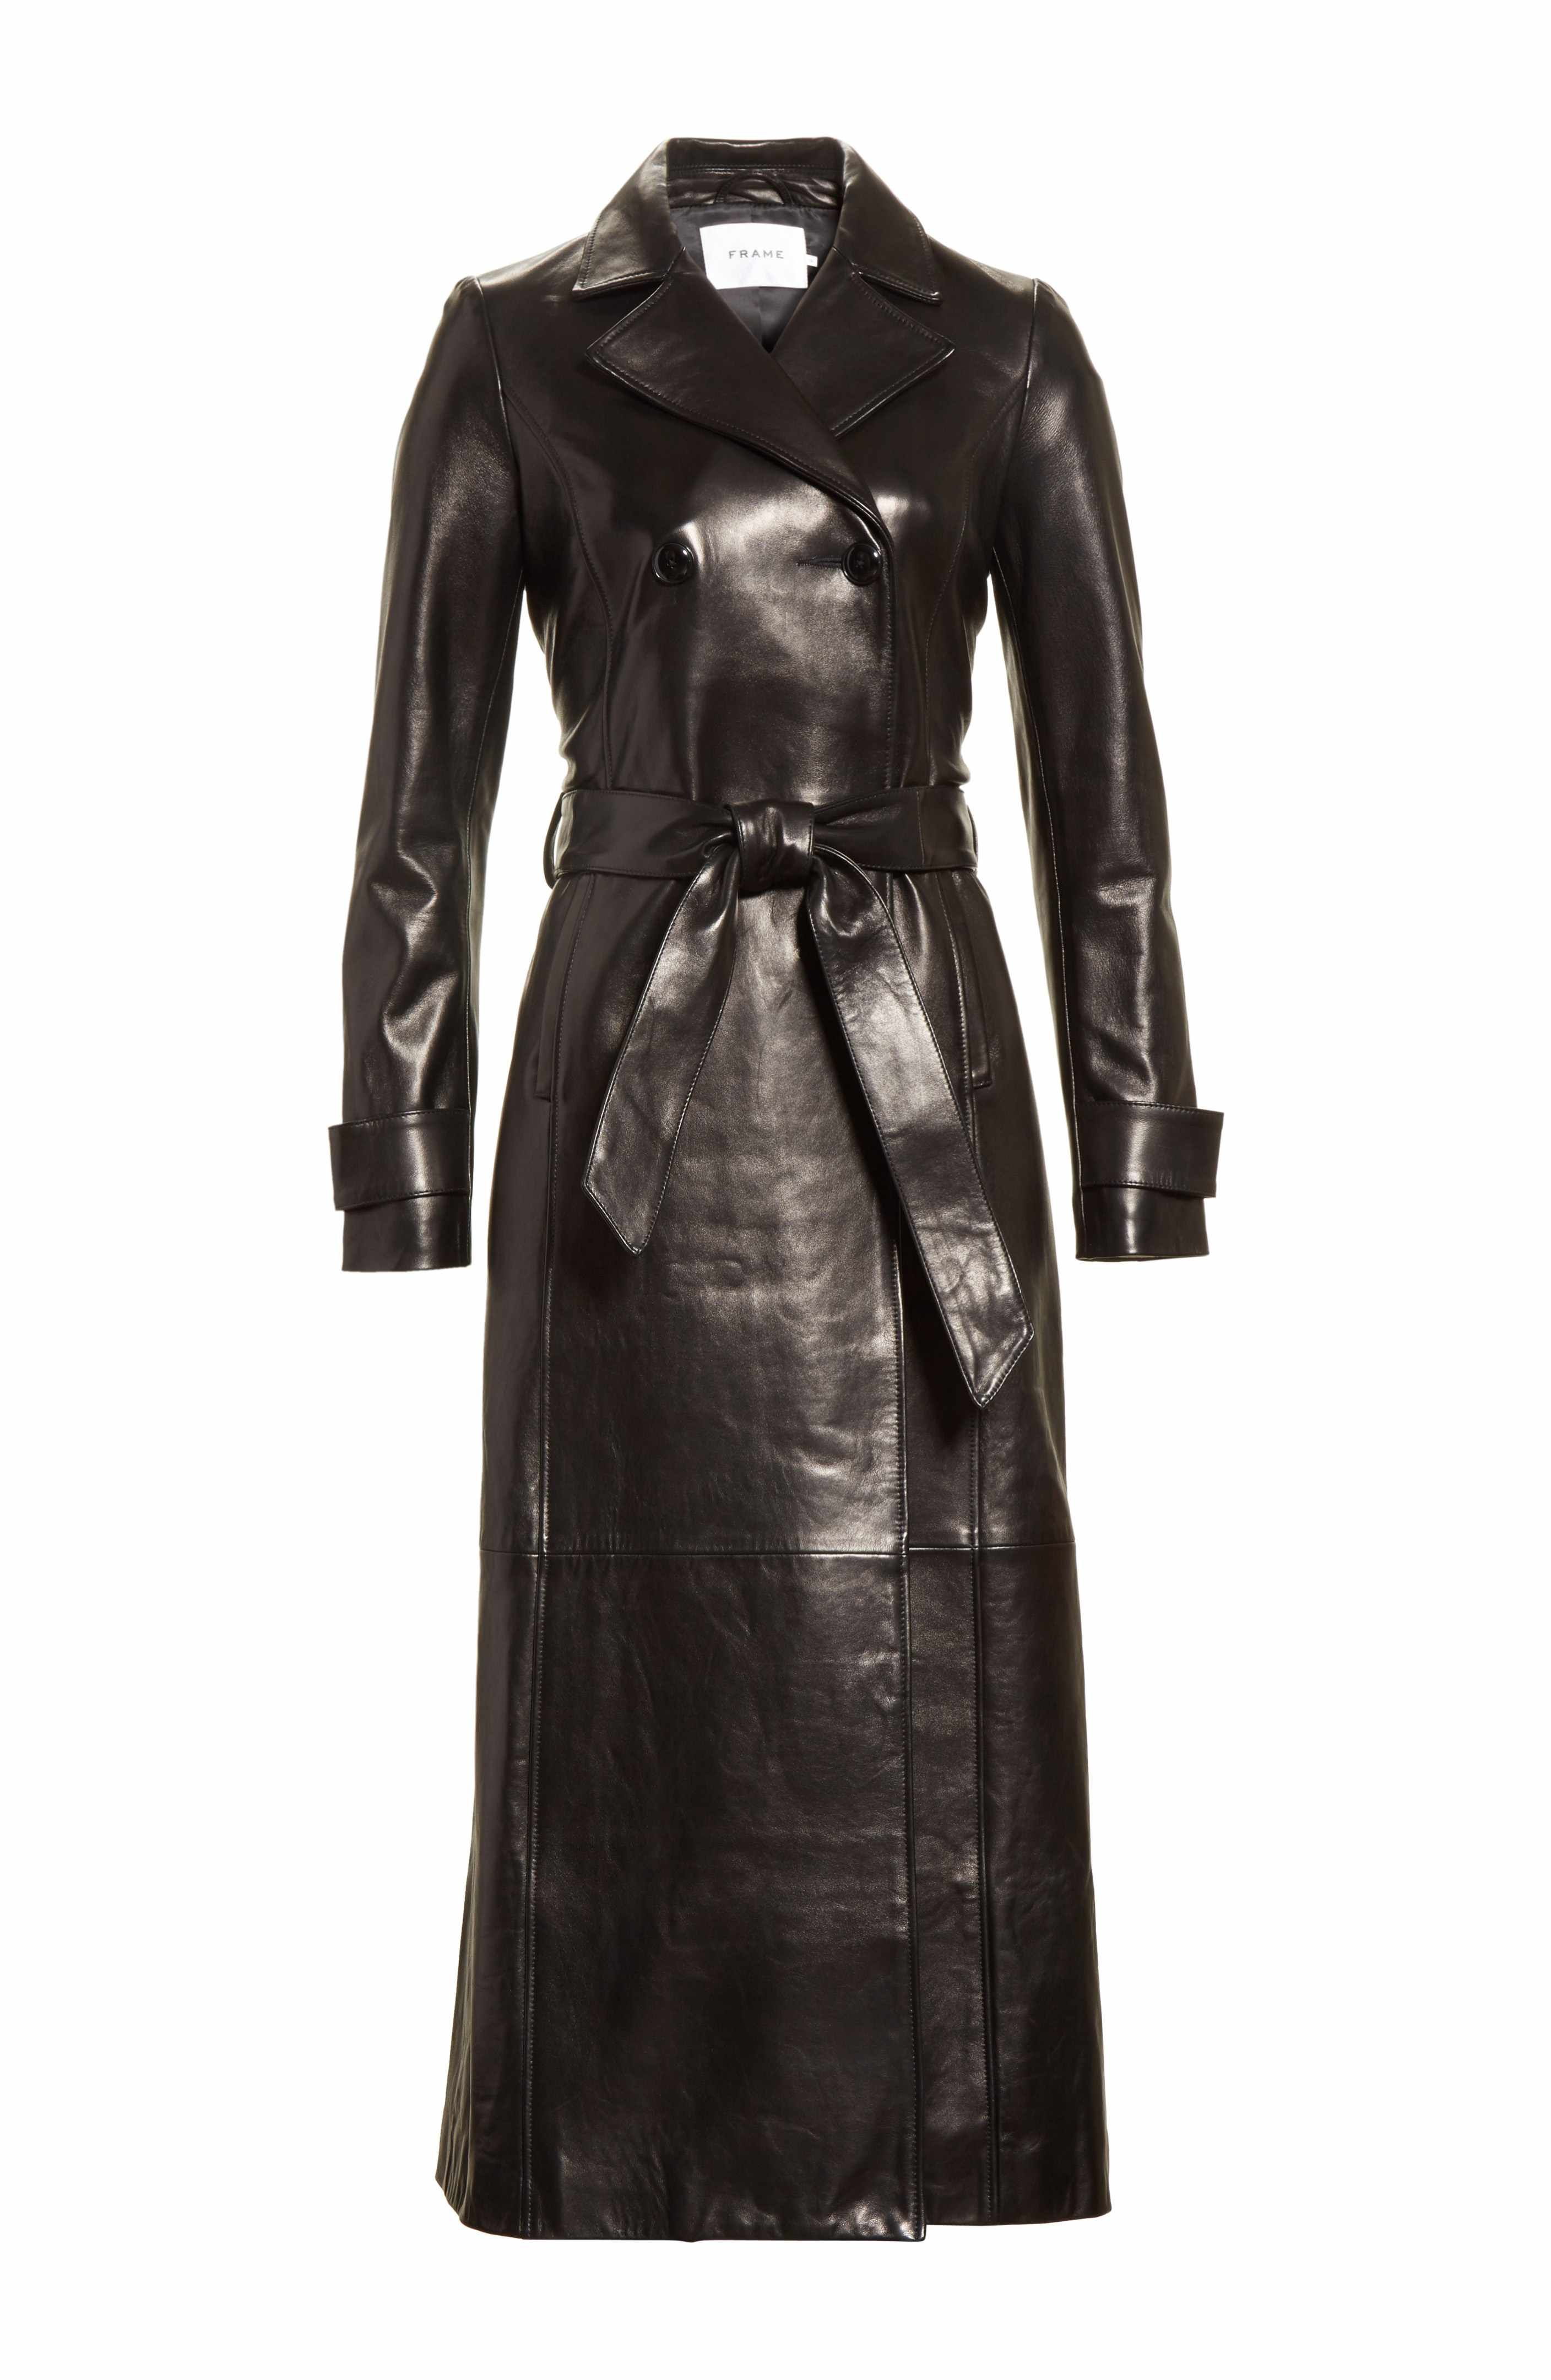 FRAME Leather Trench Coat. Find this Pin and more on Dámske kožené bundy ... 0a0a1738523